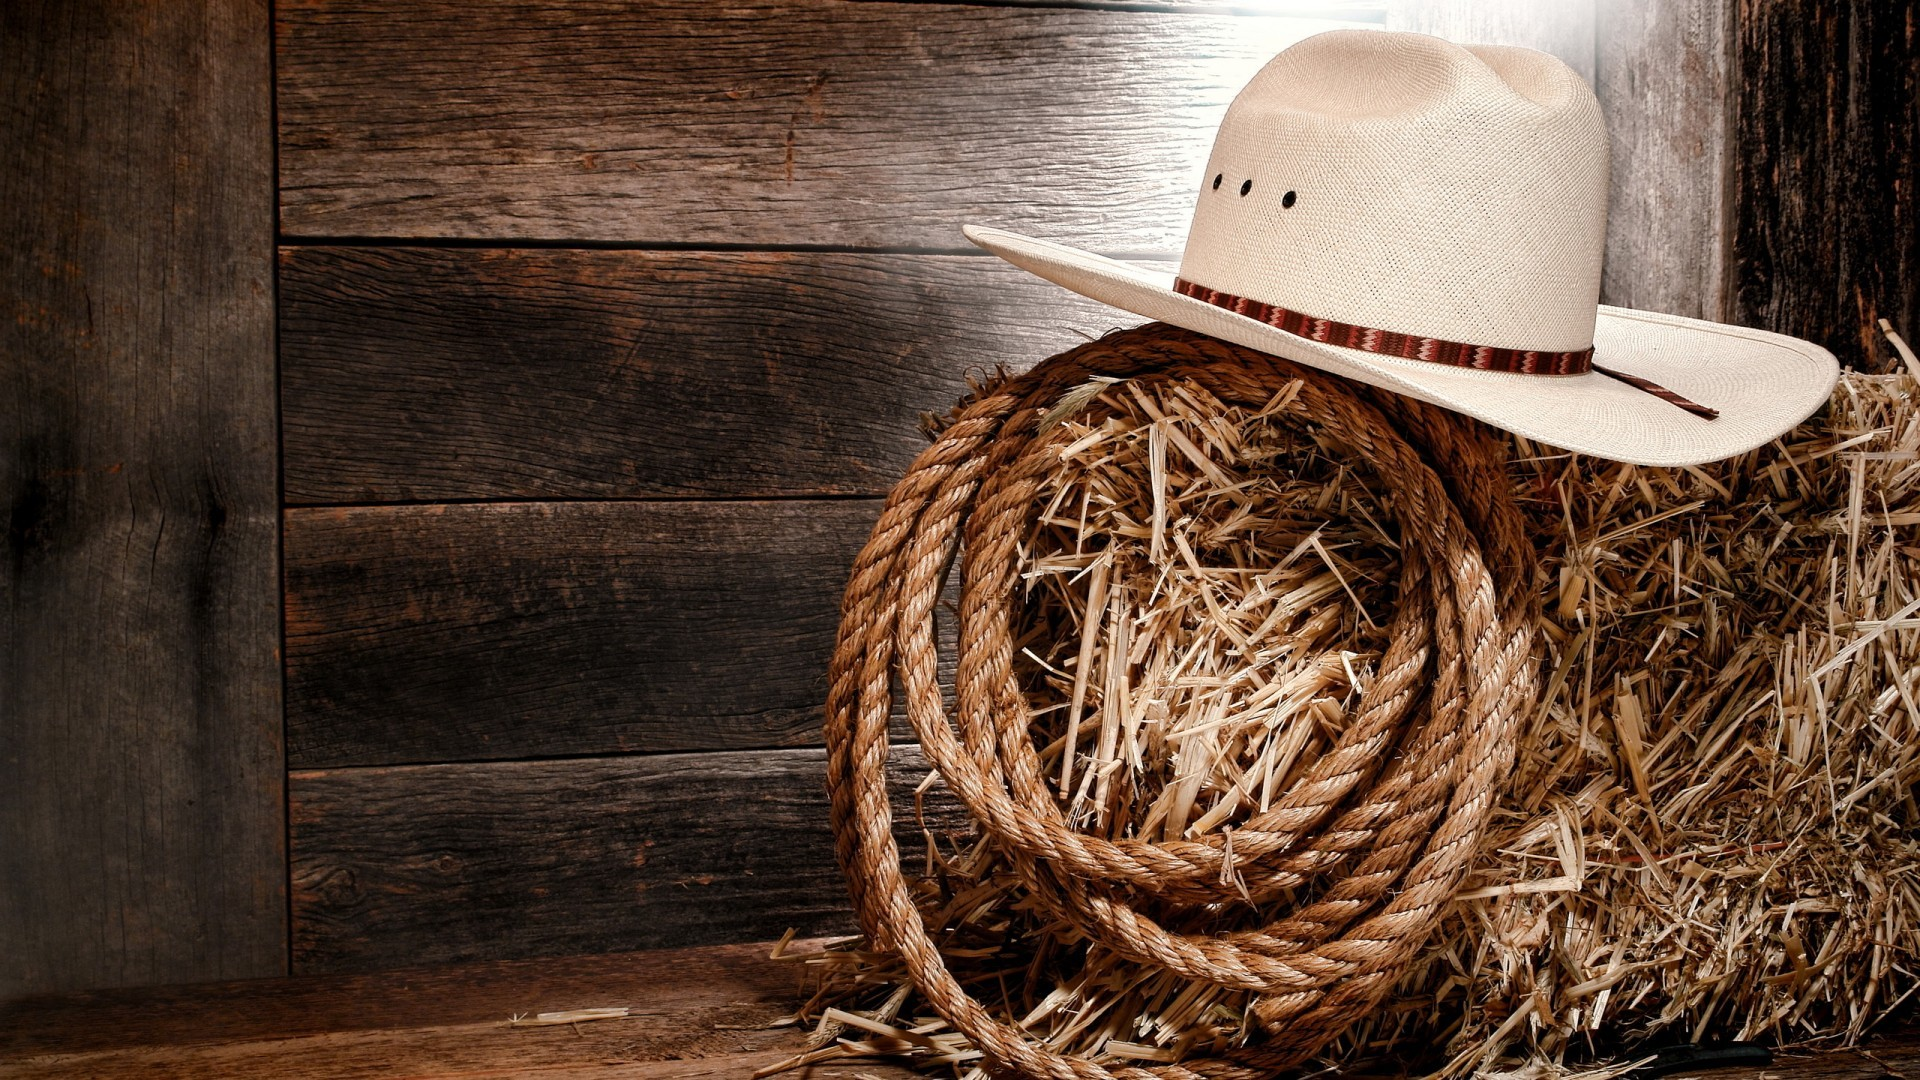 1920x1080 Wallpaper hay, rope, hat, Cowboy hat.